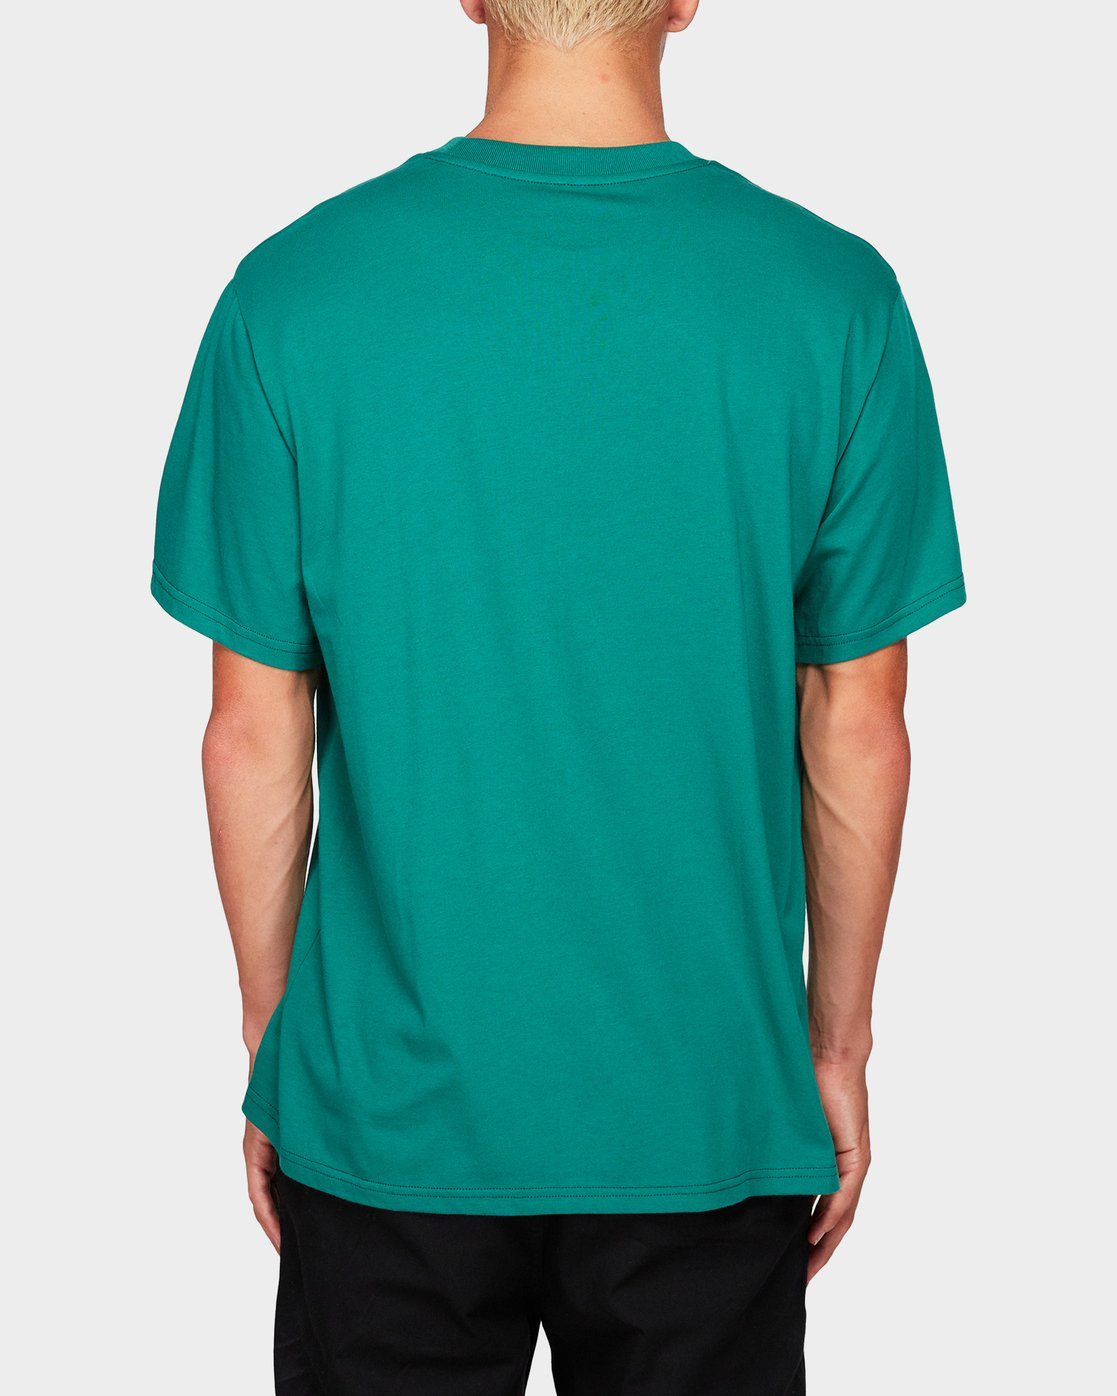 1 DIMENSION SS TEE Green 194017 Element